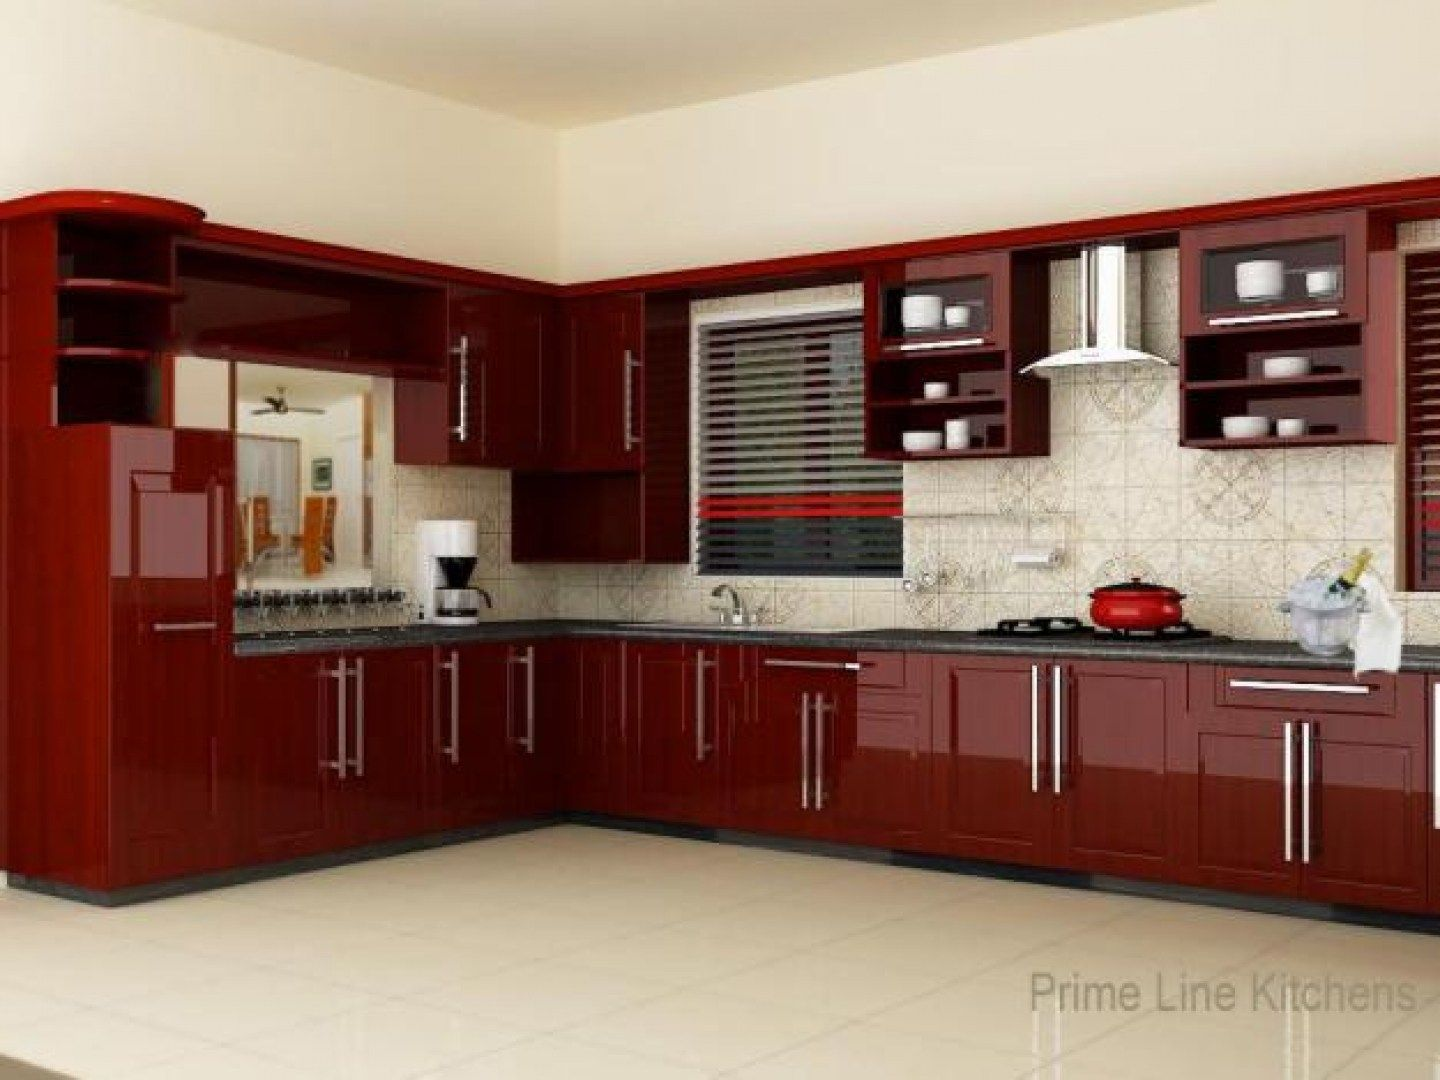 Kitchen design ideas kitchen woodwork designs hyderabad for Kitchen cabinet design ideas photos